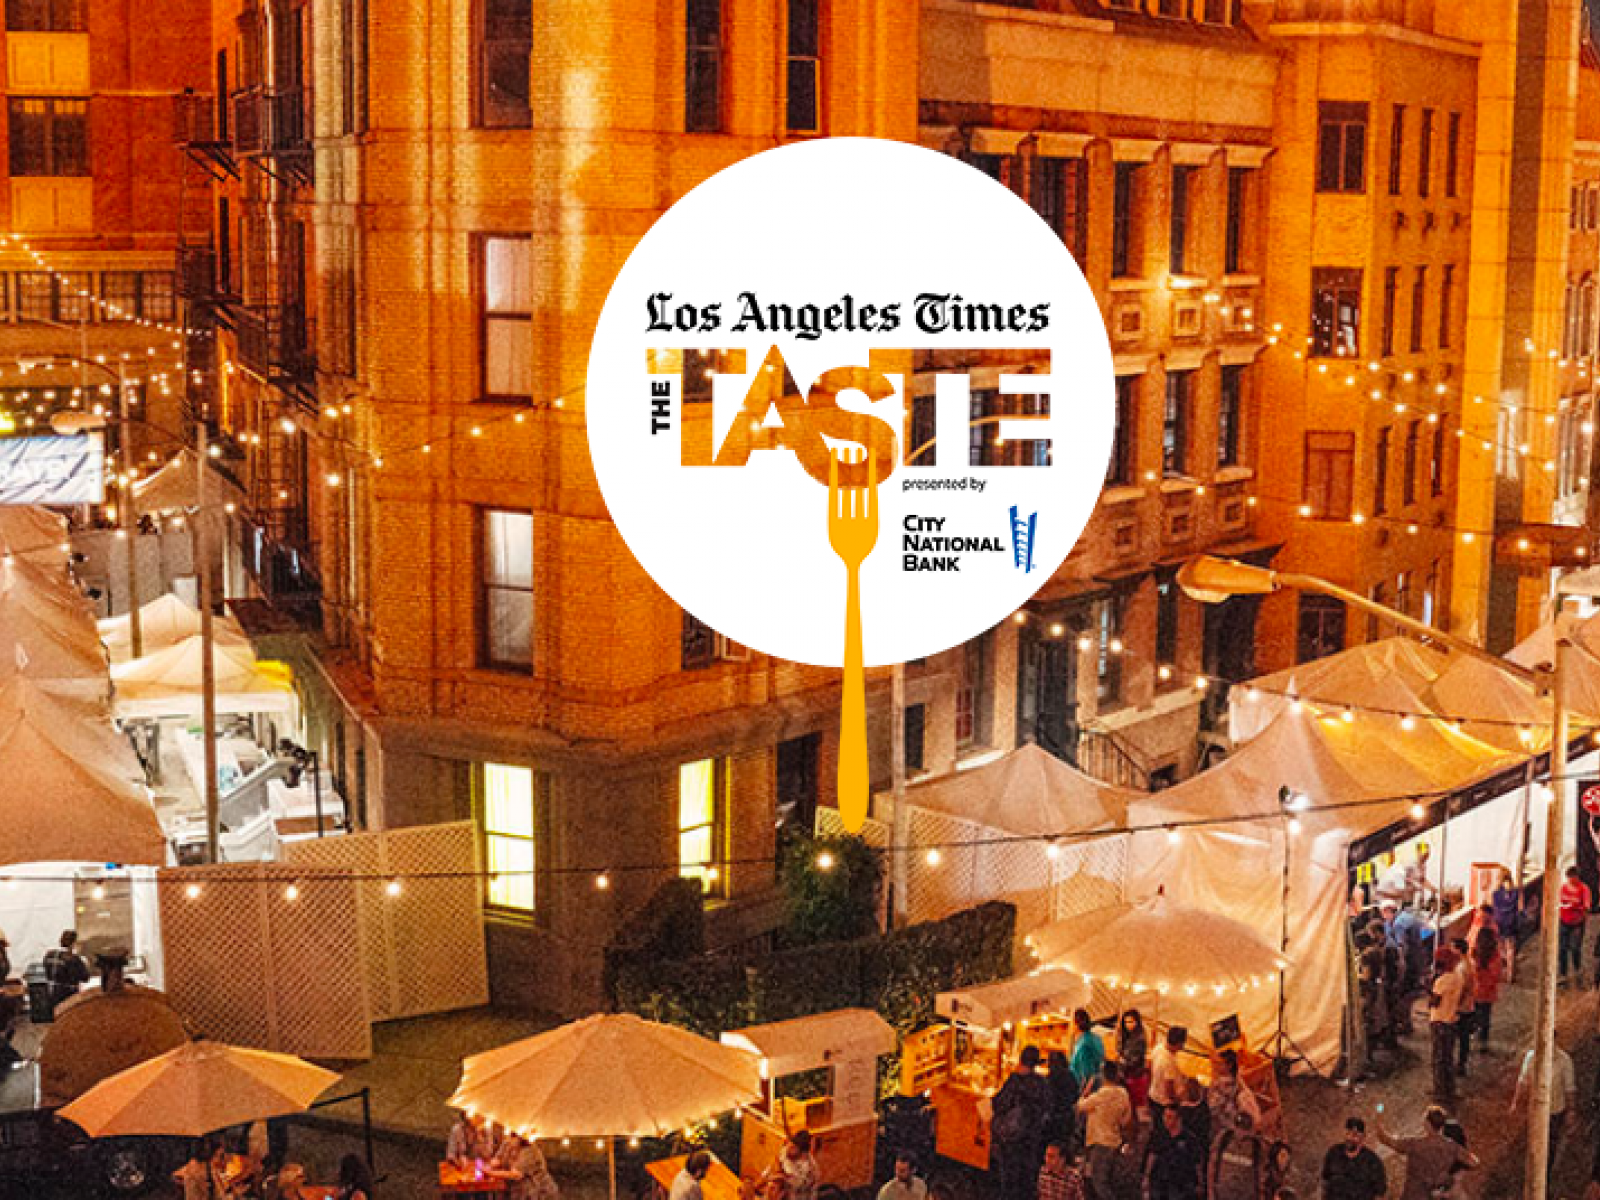 Main image for event titled Los Angeles Times' The Taste (OPENING NIGHT)